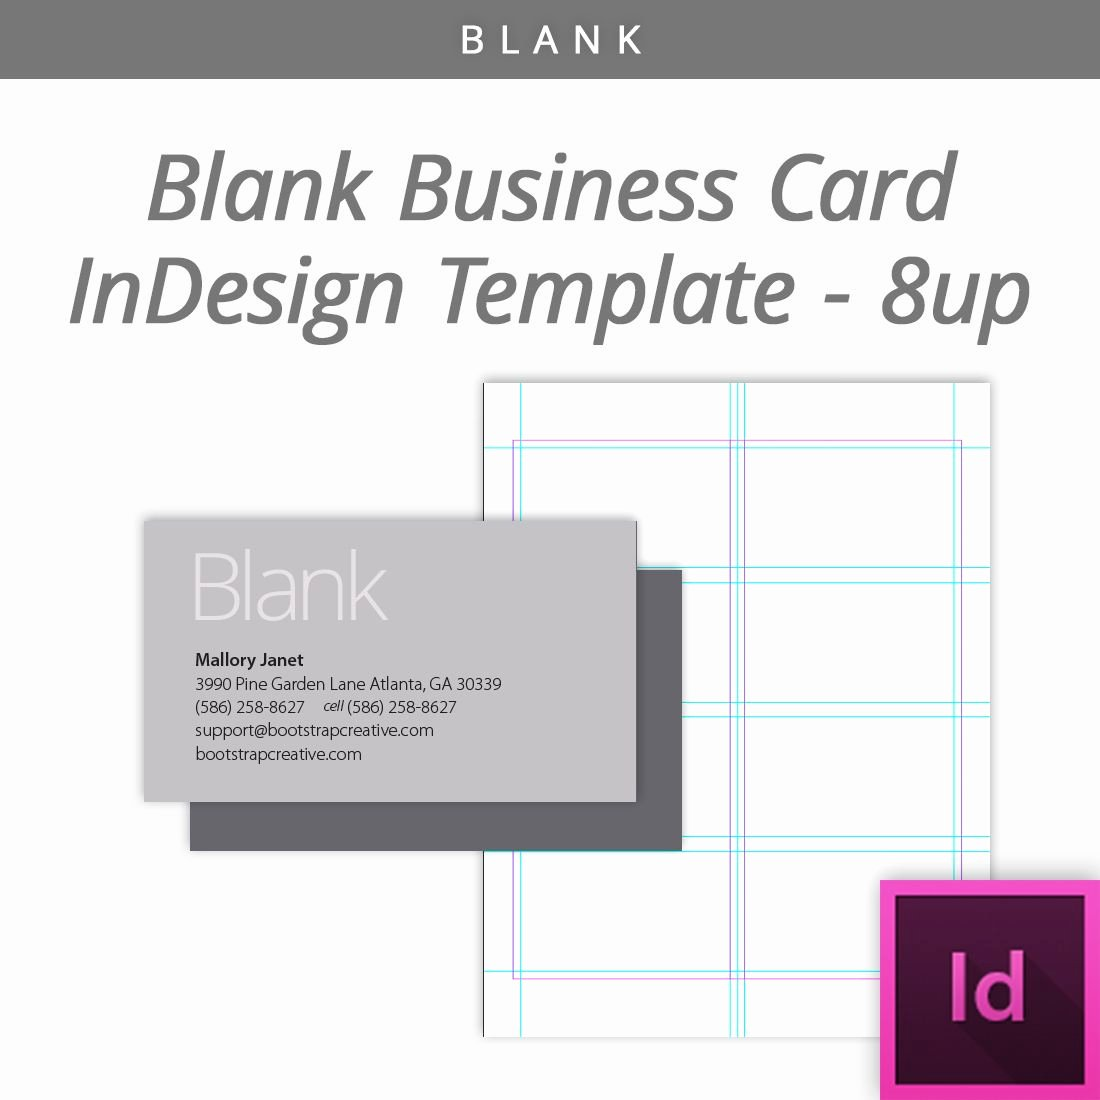 Indesign Business Plan Template Fresh Blank Indesign Business Card Template 8 Up Free Download Designtemplate